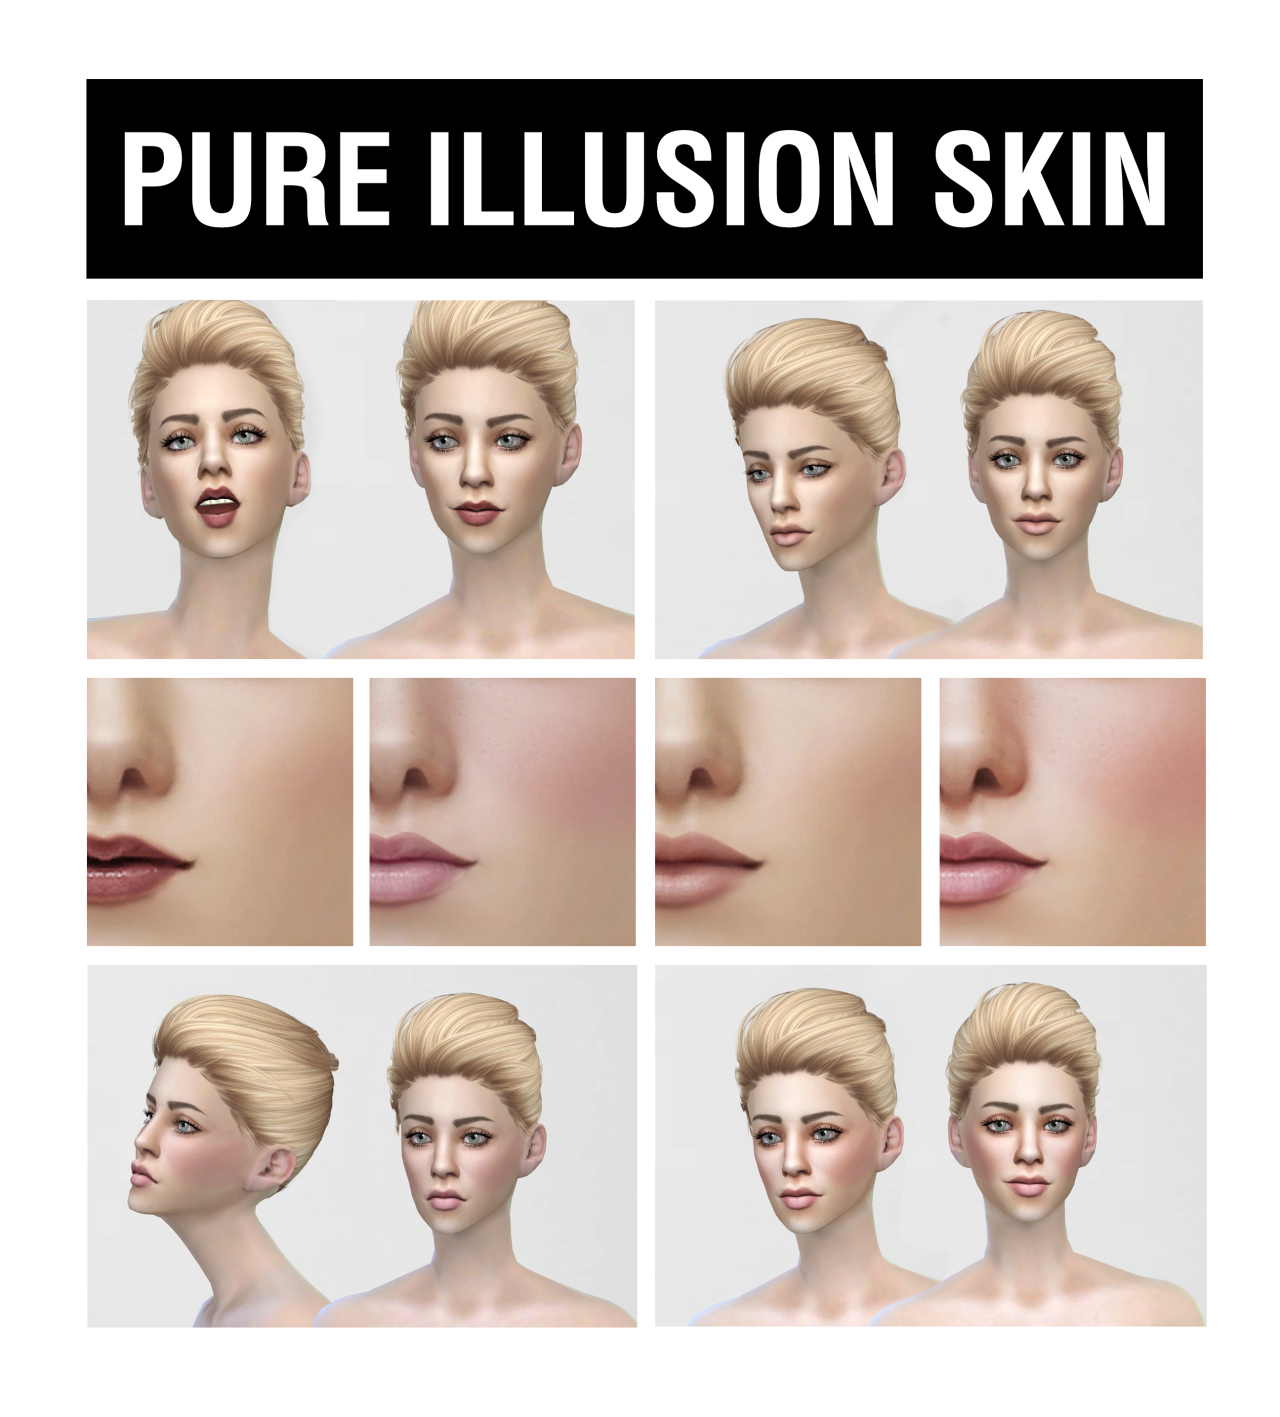 Pure Illusion Skin for Females by LiyahSim